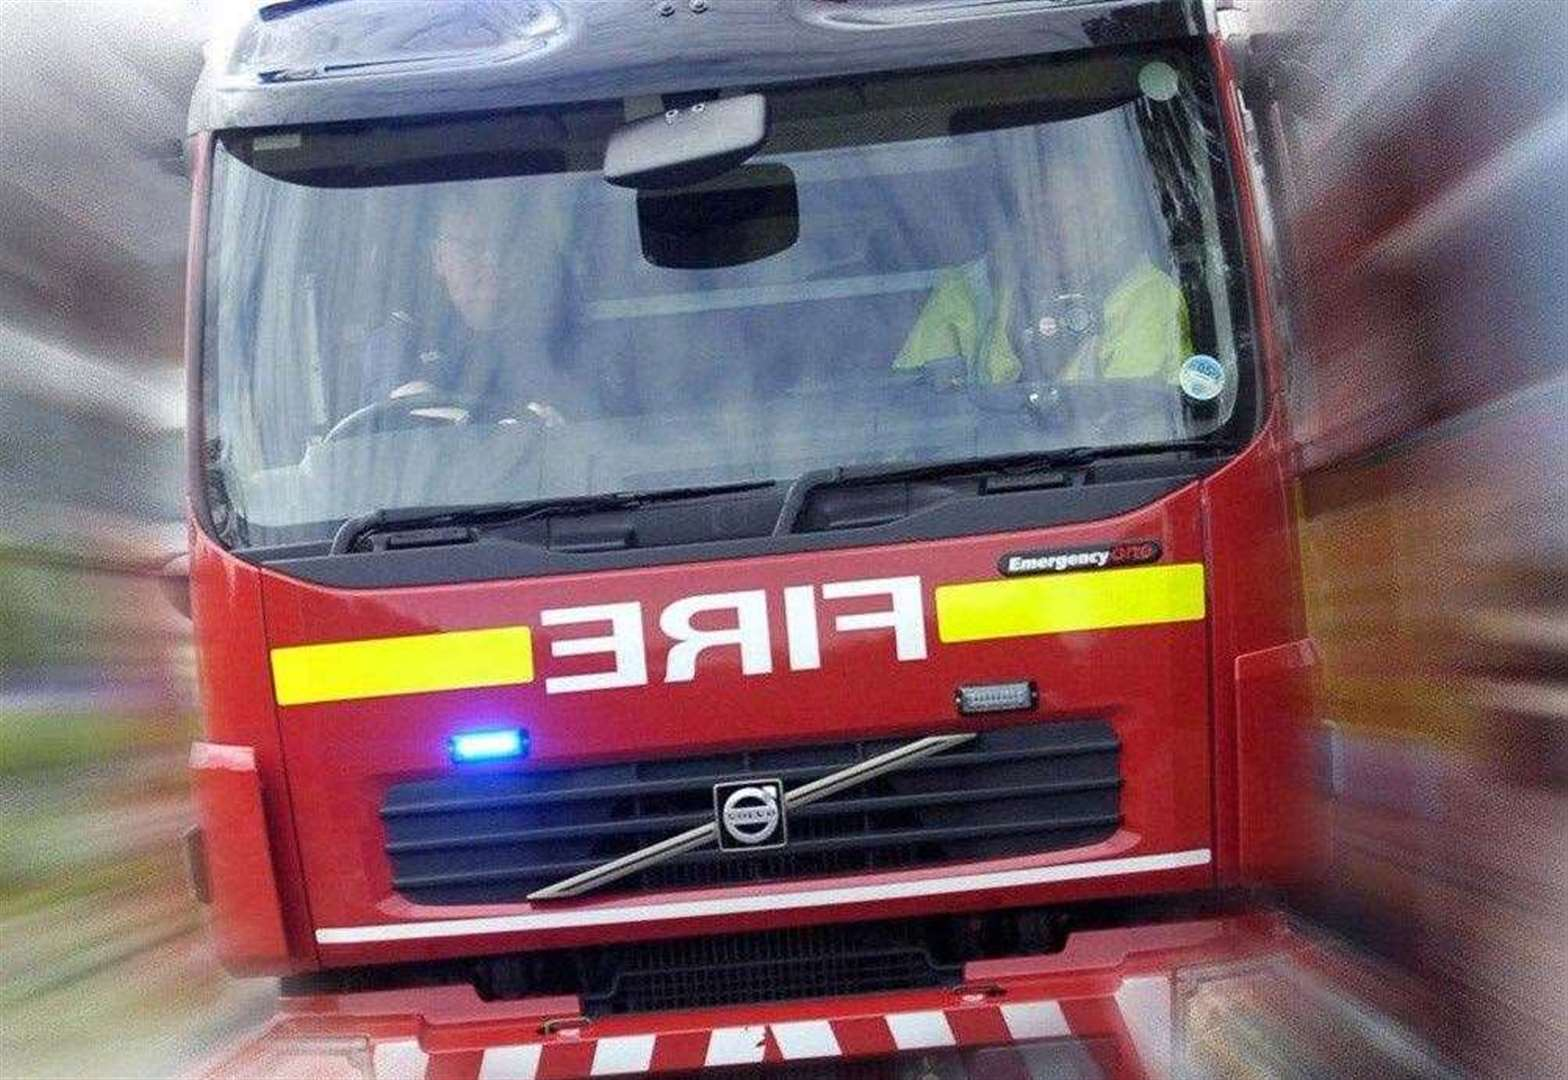 Have your say on fire service community plan